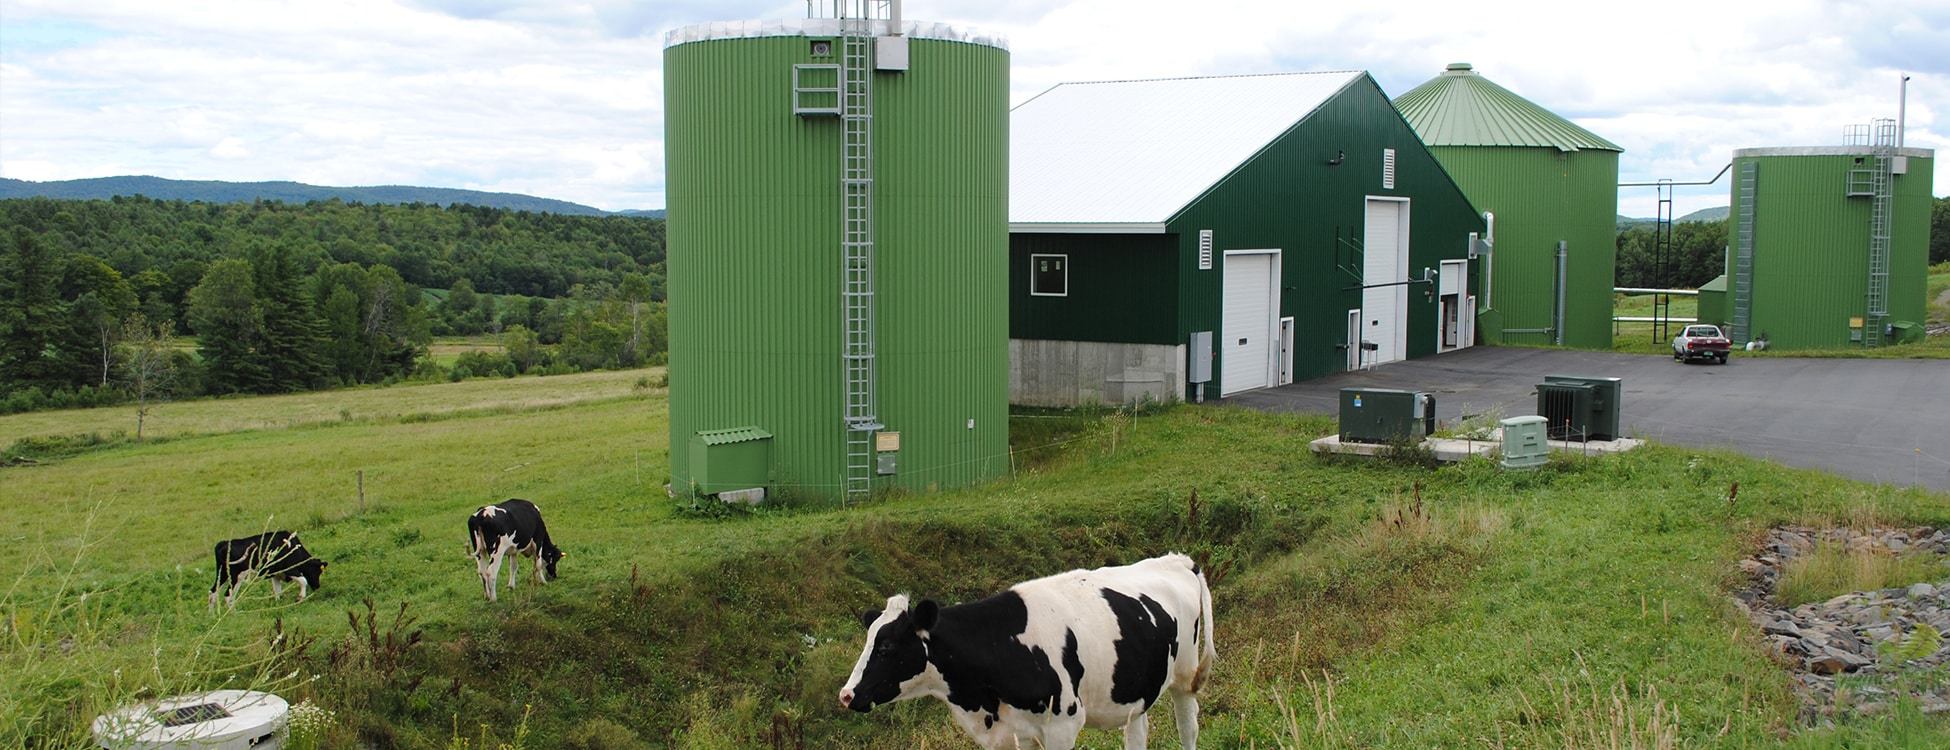 Vermont Tech's digester, cows, Randolph Center campus